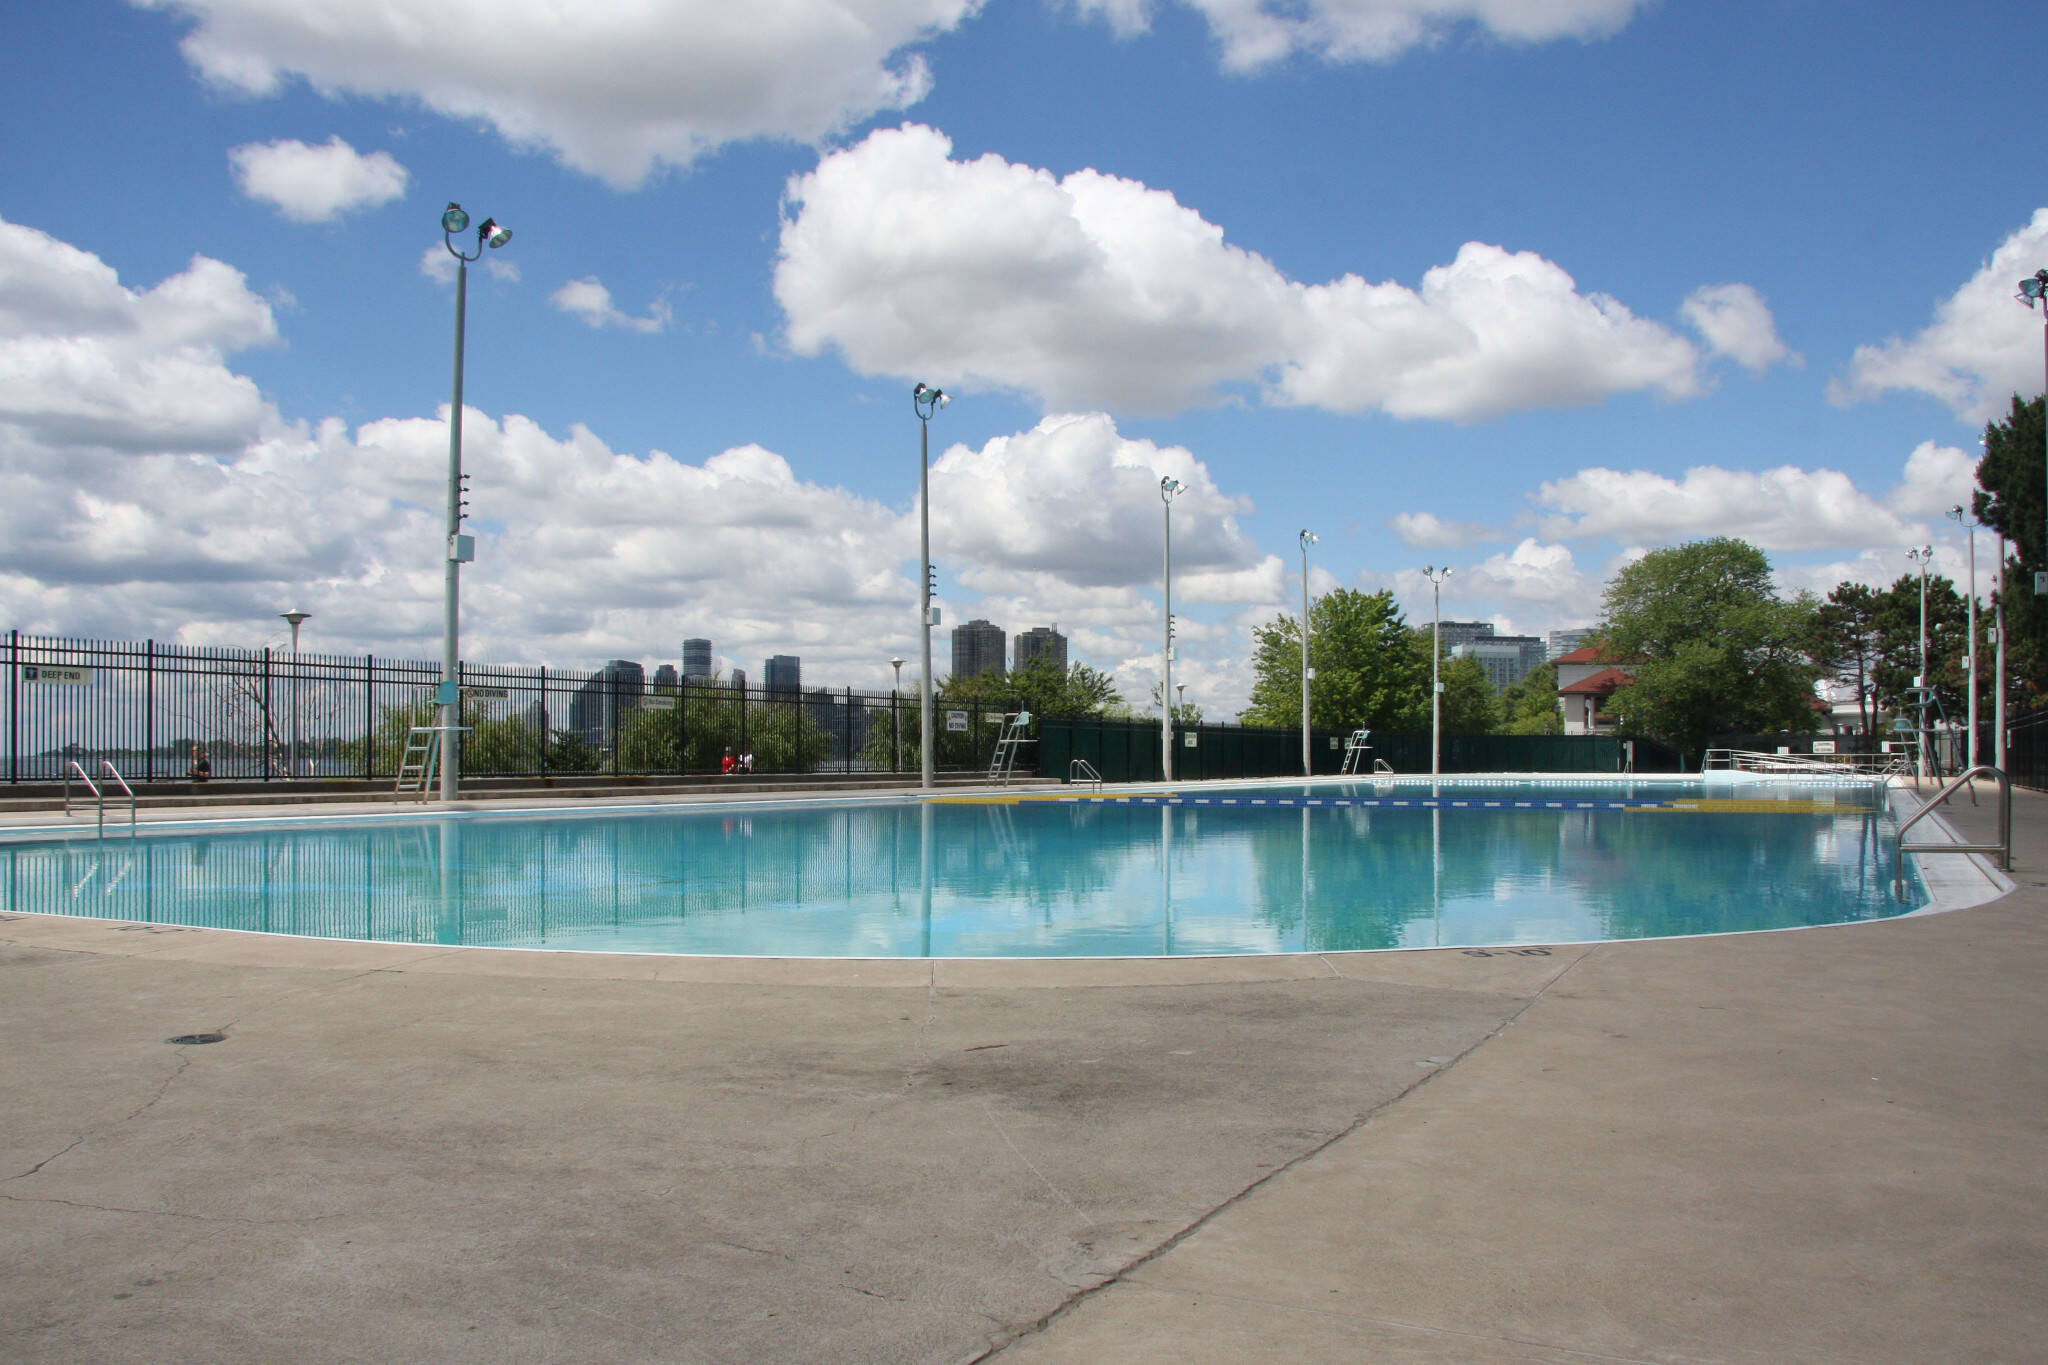 Big Garden Pools Of The Top 10 Outdoor Swimming Pools In Toronto